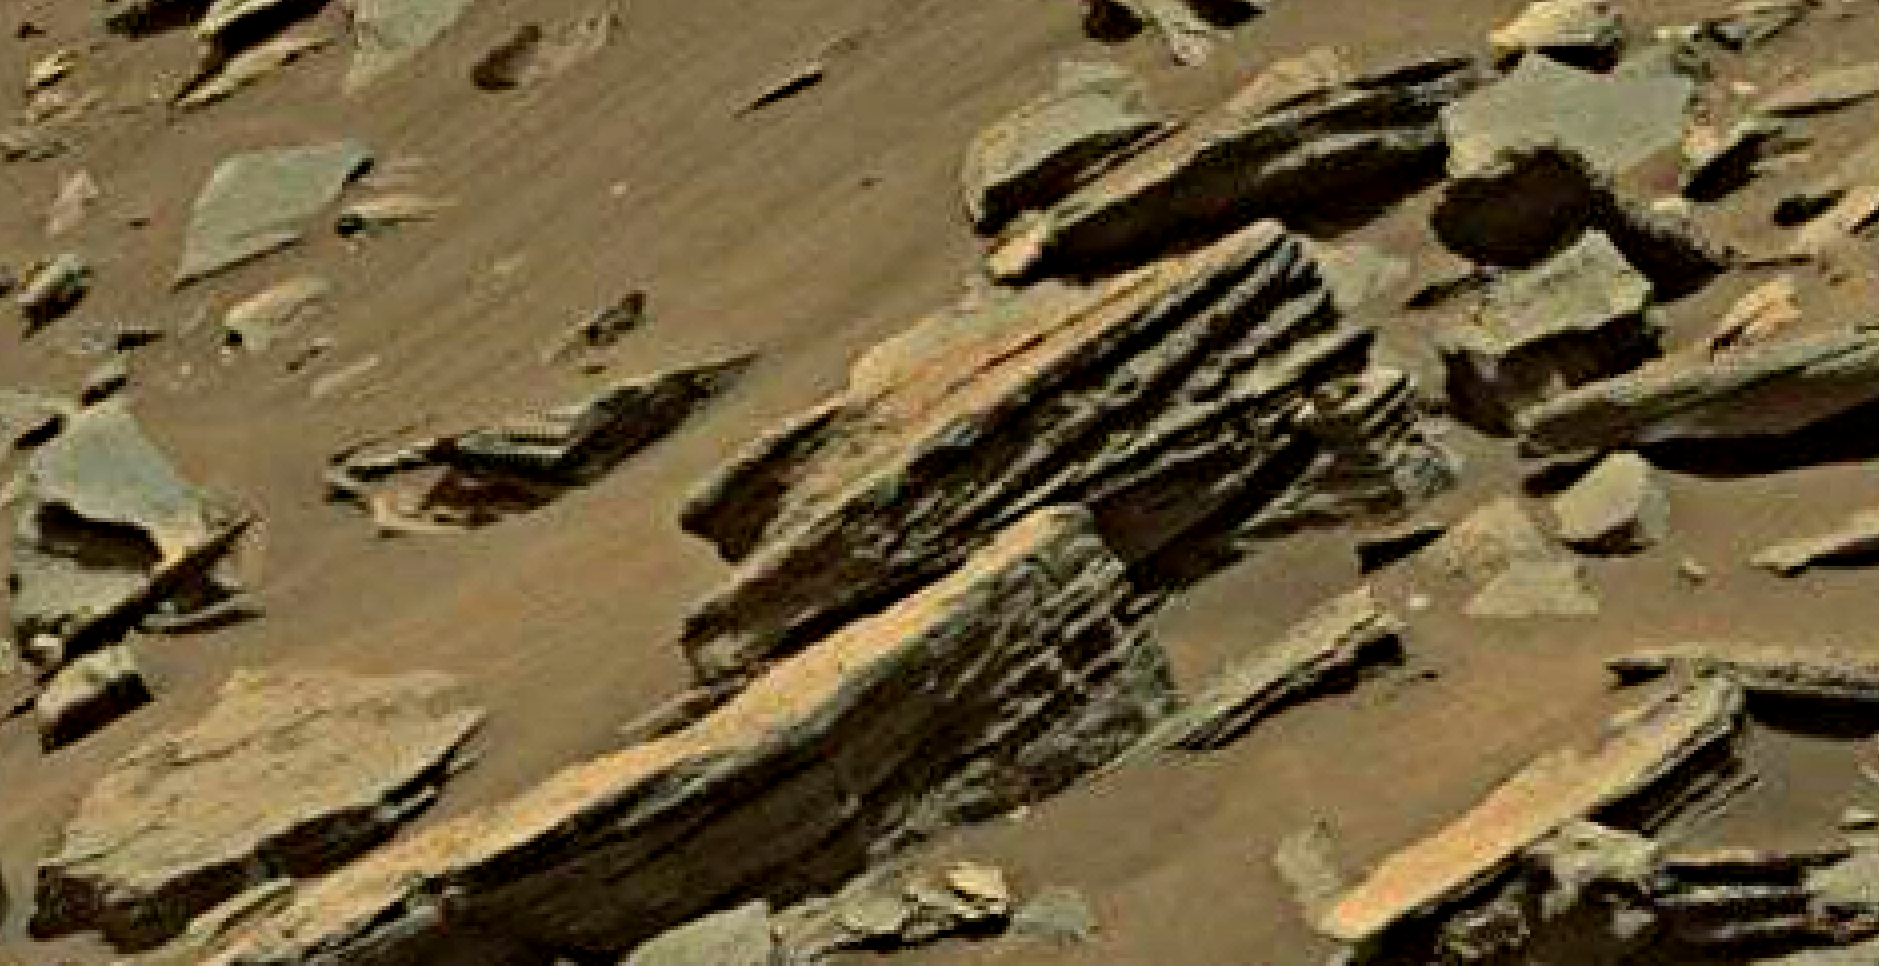 mars-sol-1455-anomaly-artifacts-1-was-life-on-mars